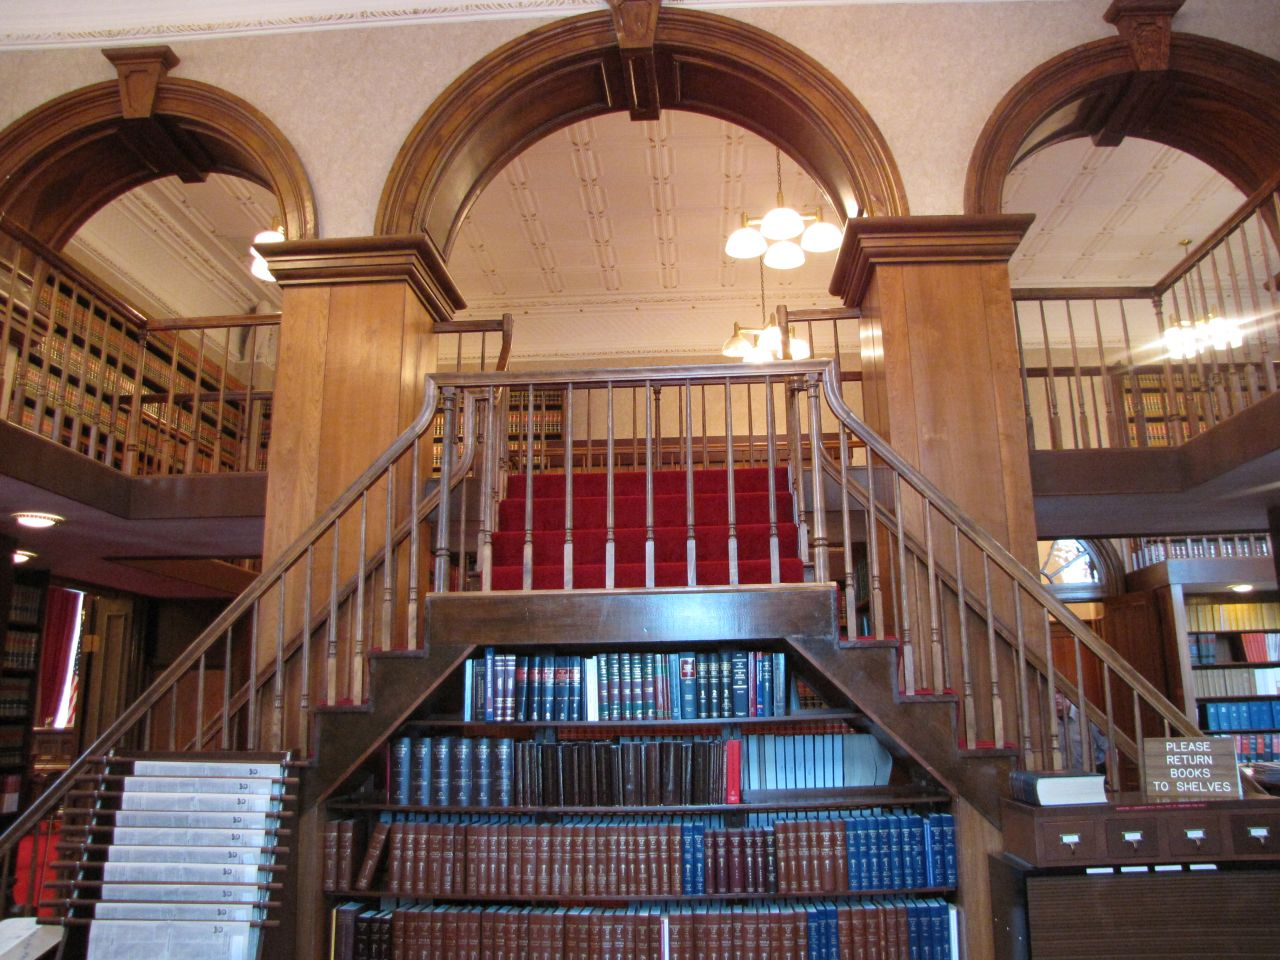 The library arches